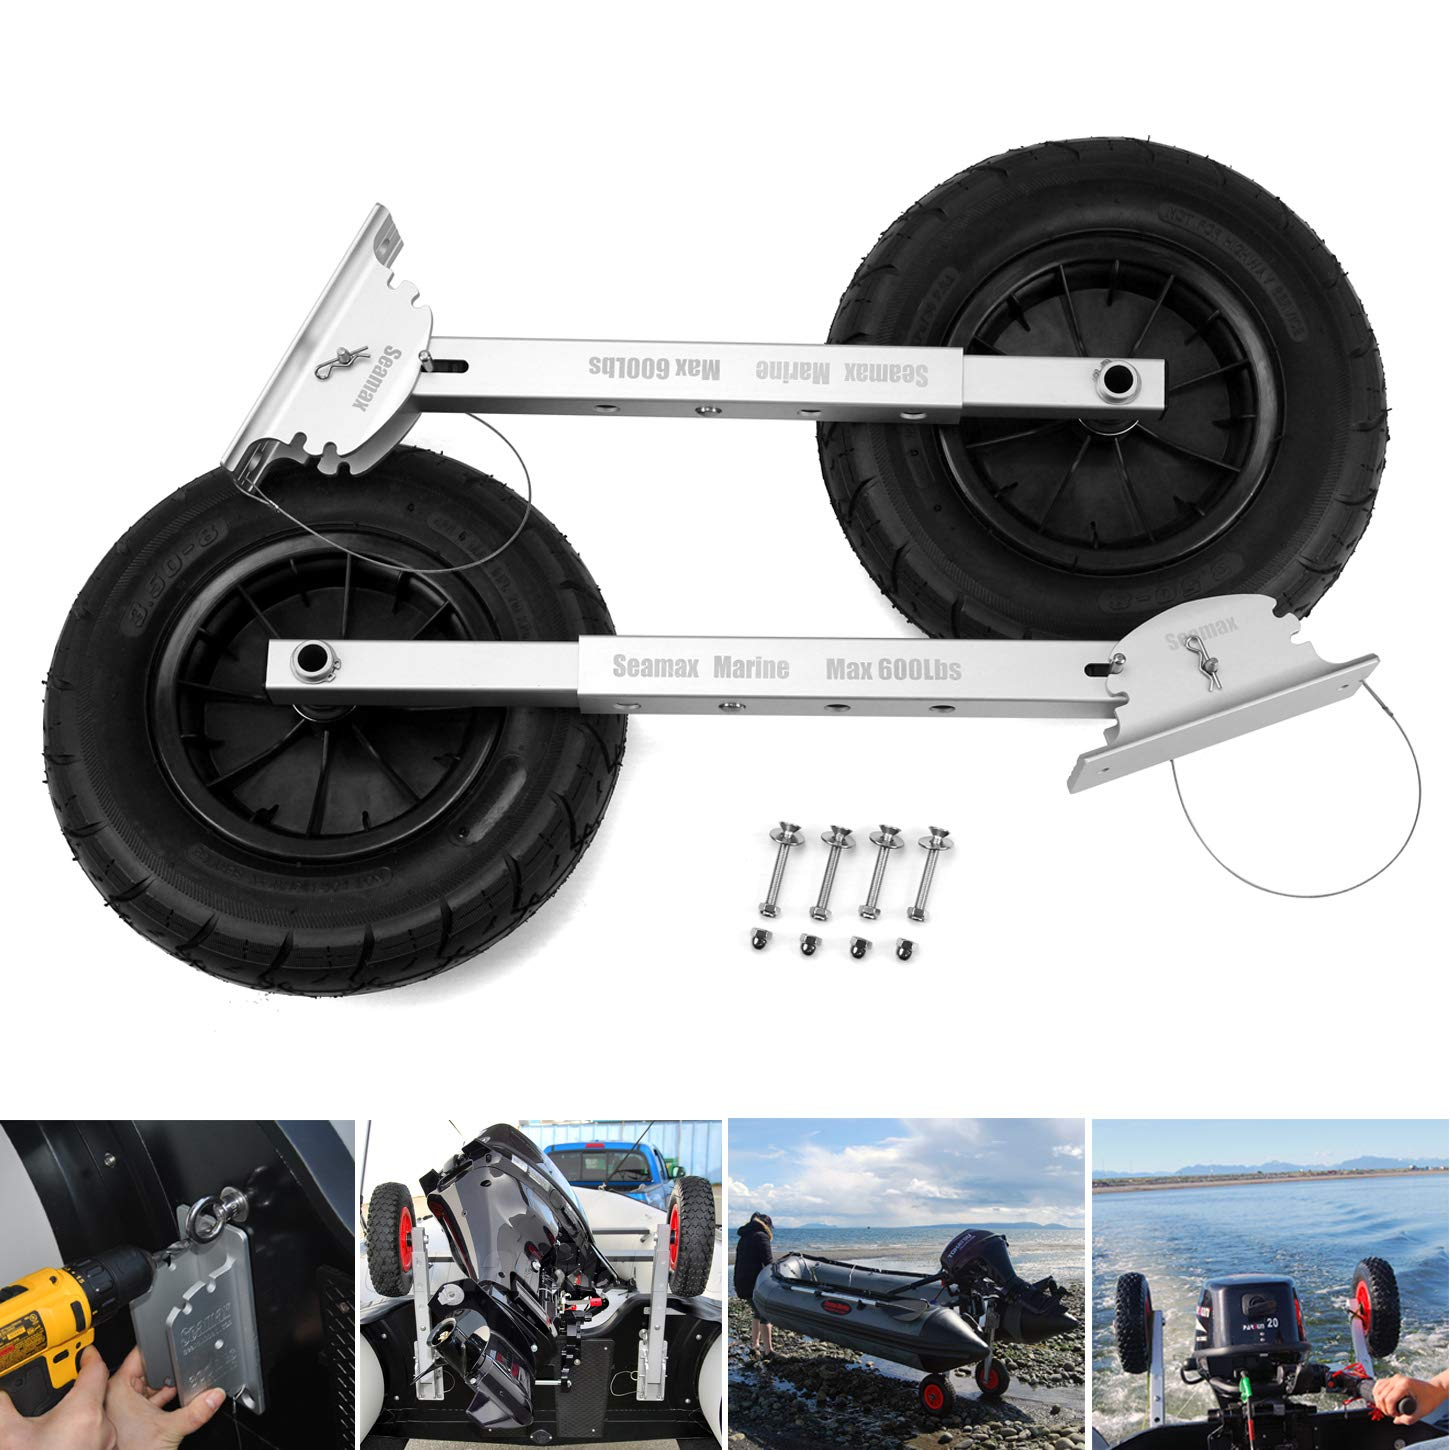 SEAMAX Deluxe 4 by 4 Boat Launching Wheels System for Zodiac Type Inflatable Boats and Aluminum Boats by Seamax